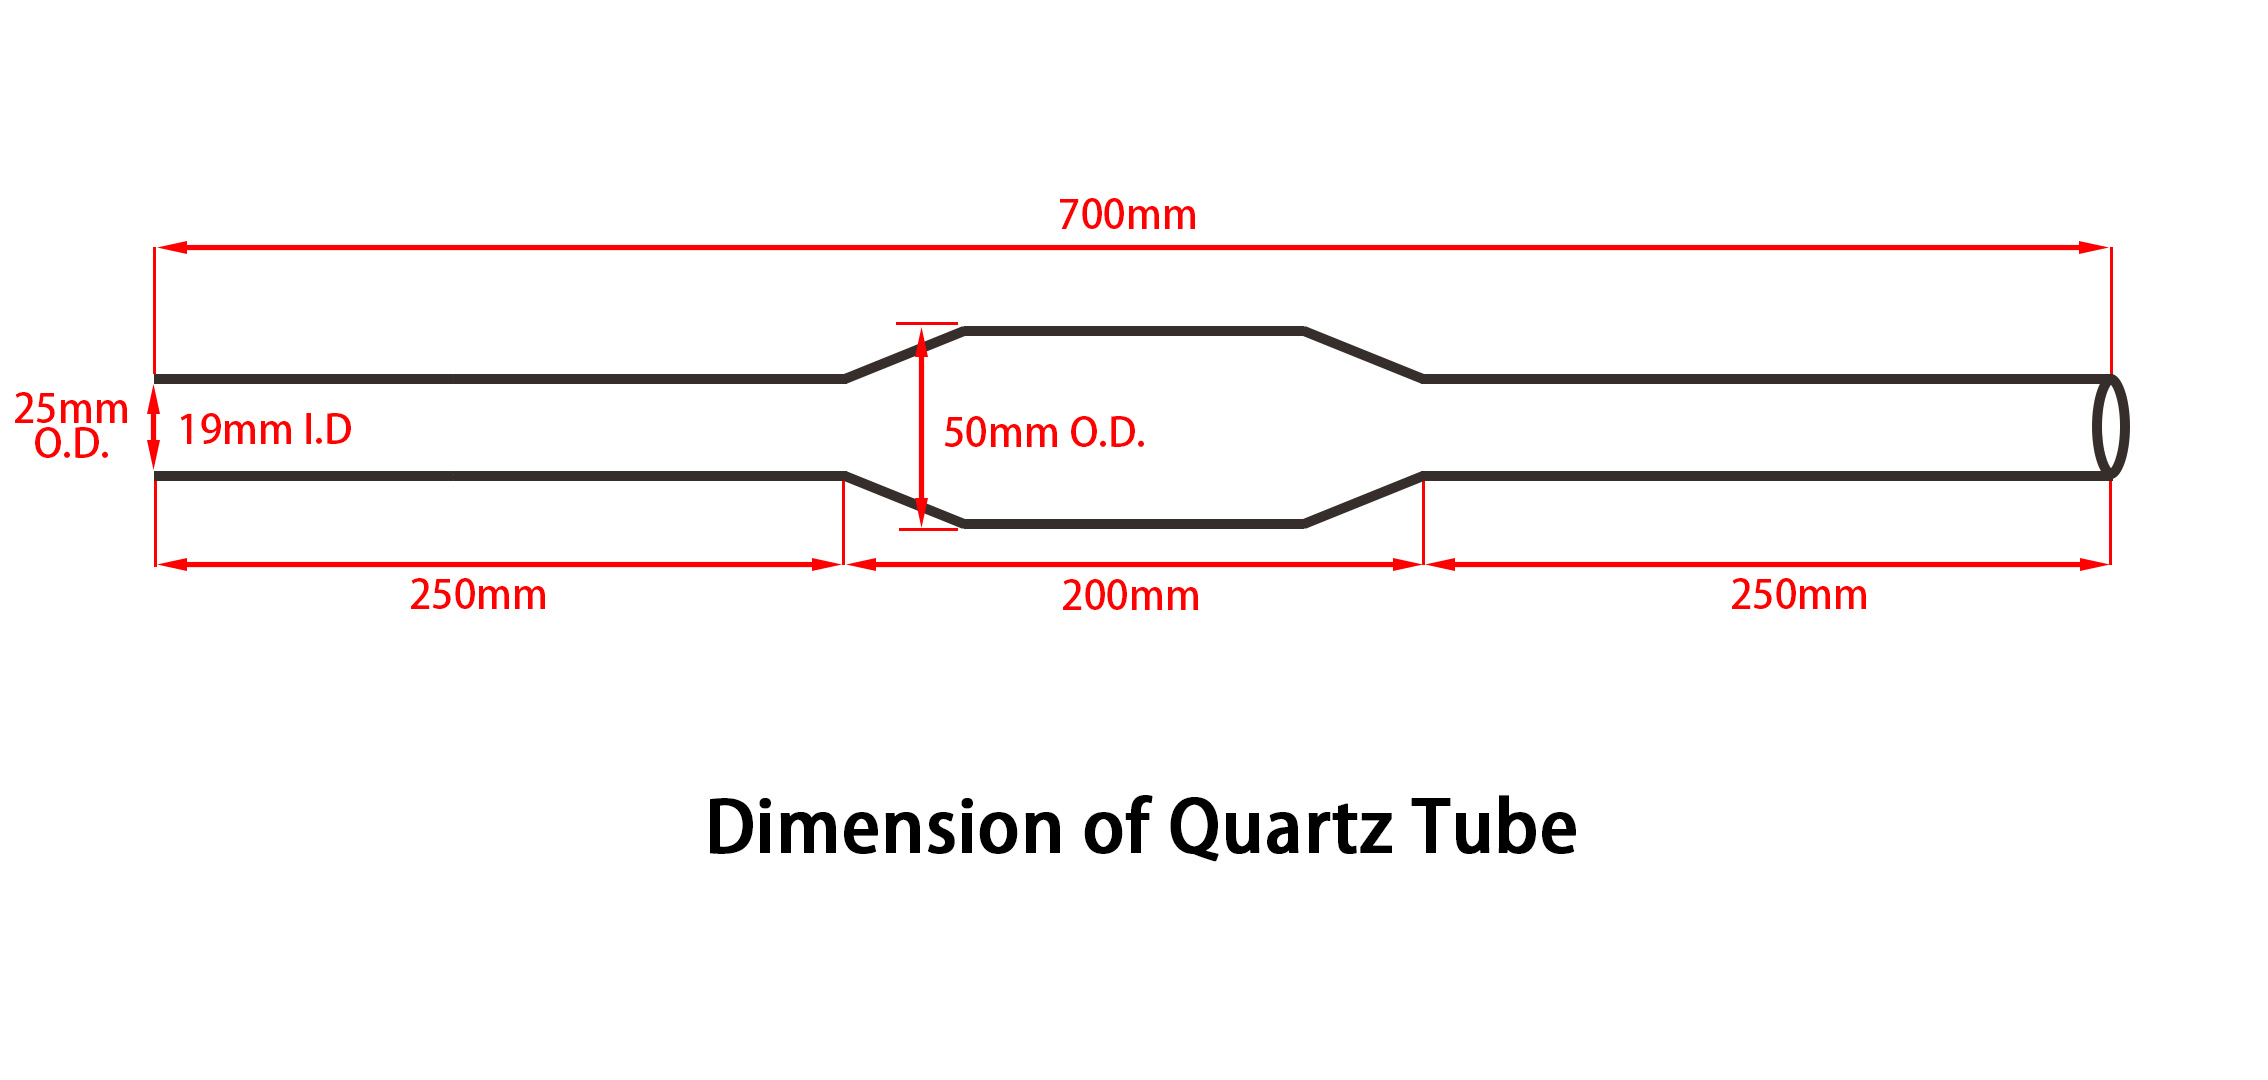 Quartz Tube Heater Wiring Diagram 240v Cadet Baseboard 120 Volts Two Zone Rotary Furnace With 4 Od 1200c Max Otf 240 Volt